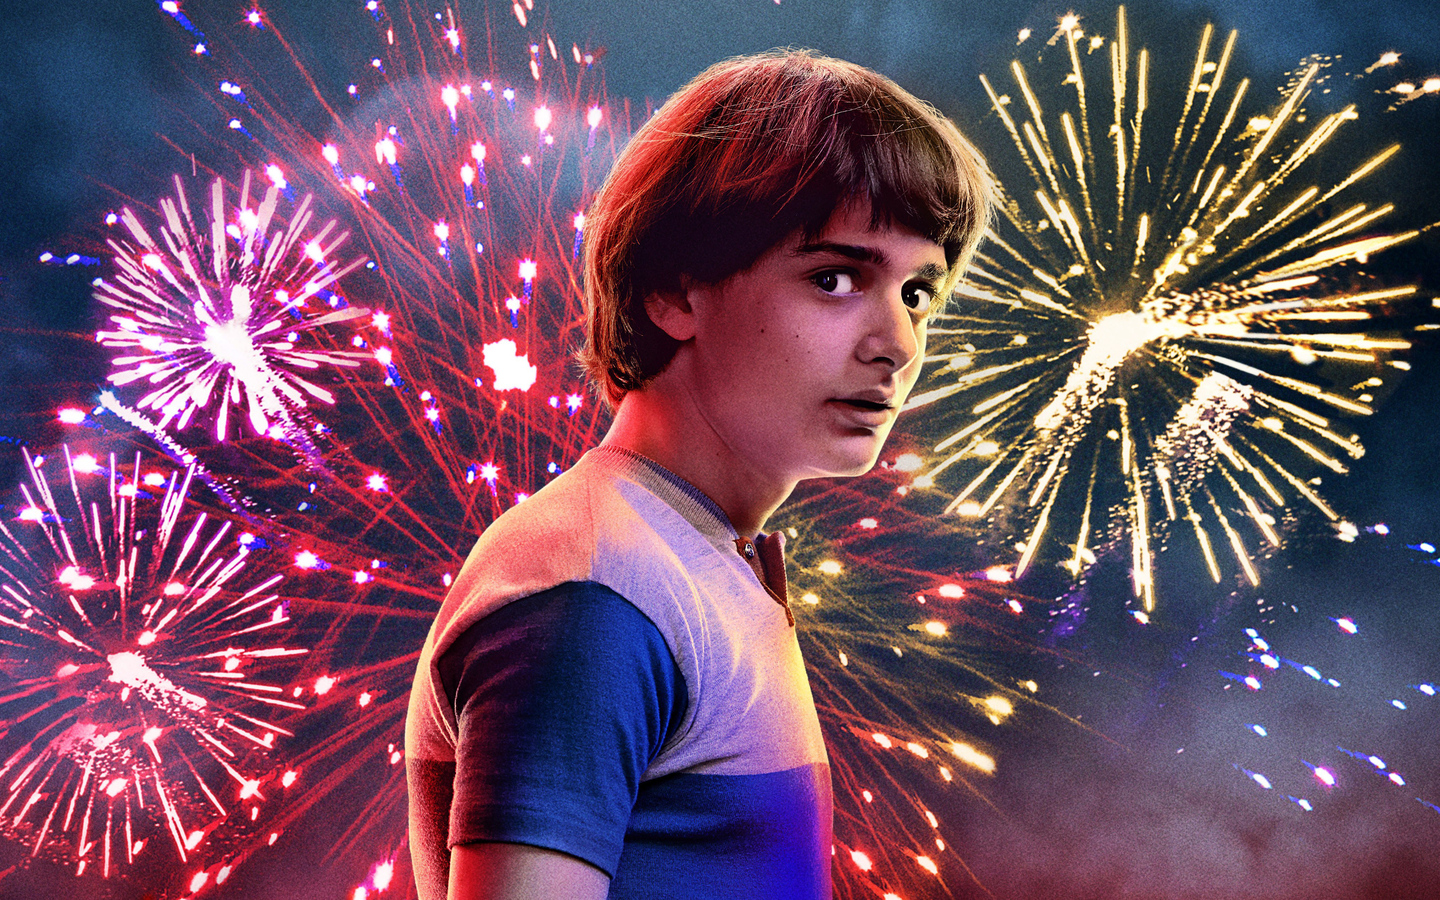 will-in-stranger-things-season-3-2019-5k-0s.jpg